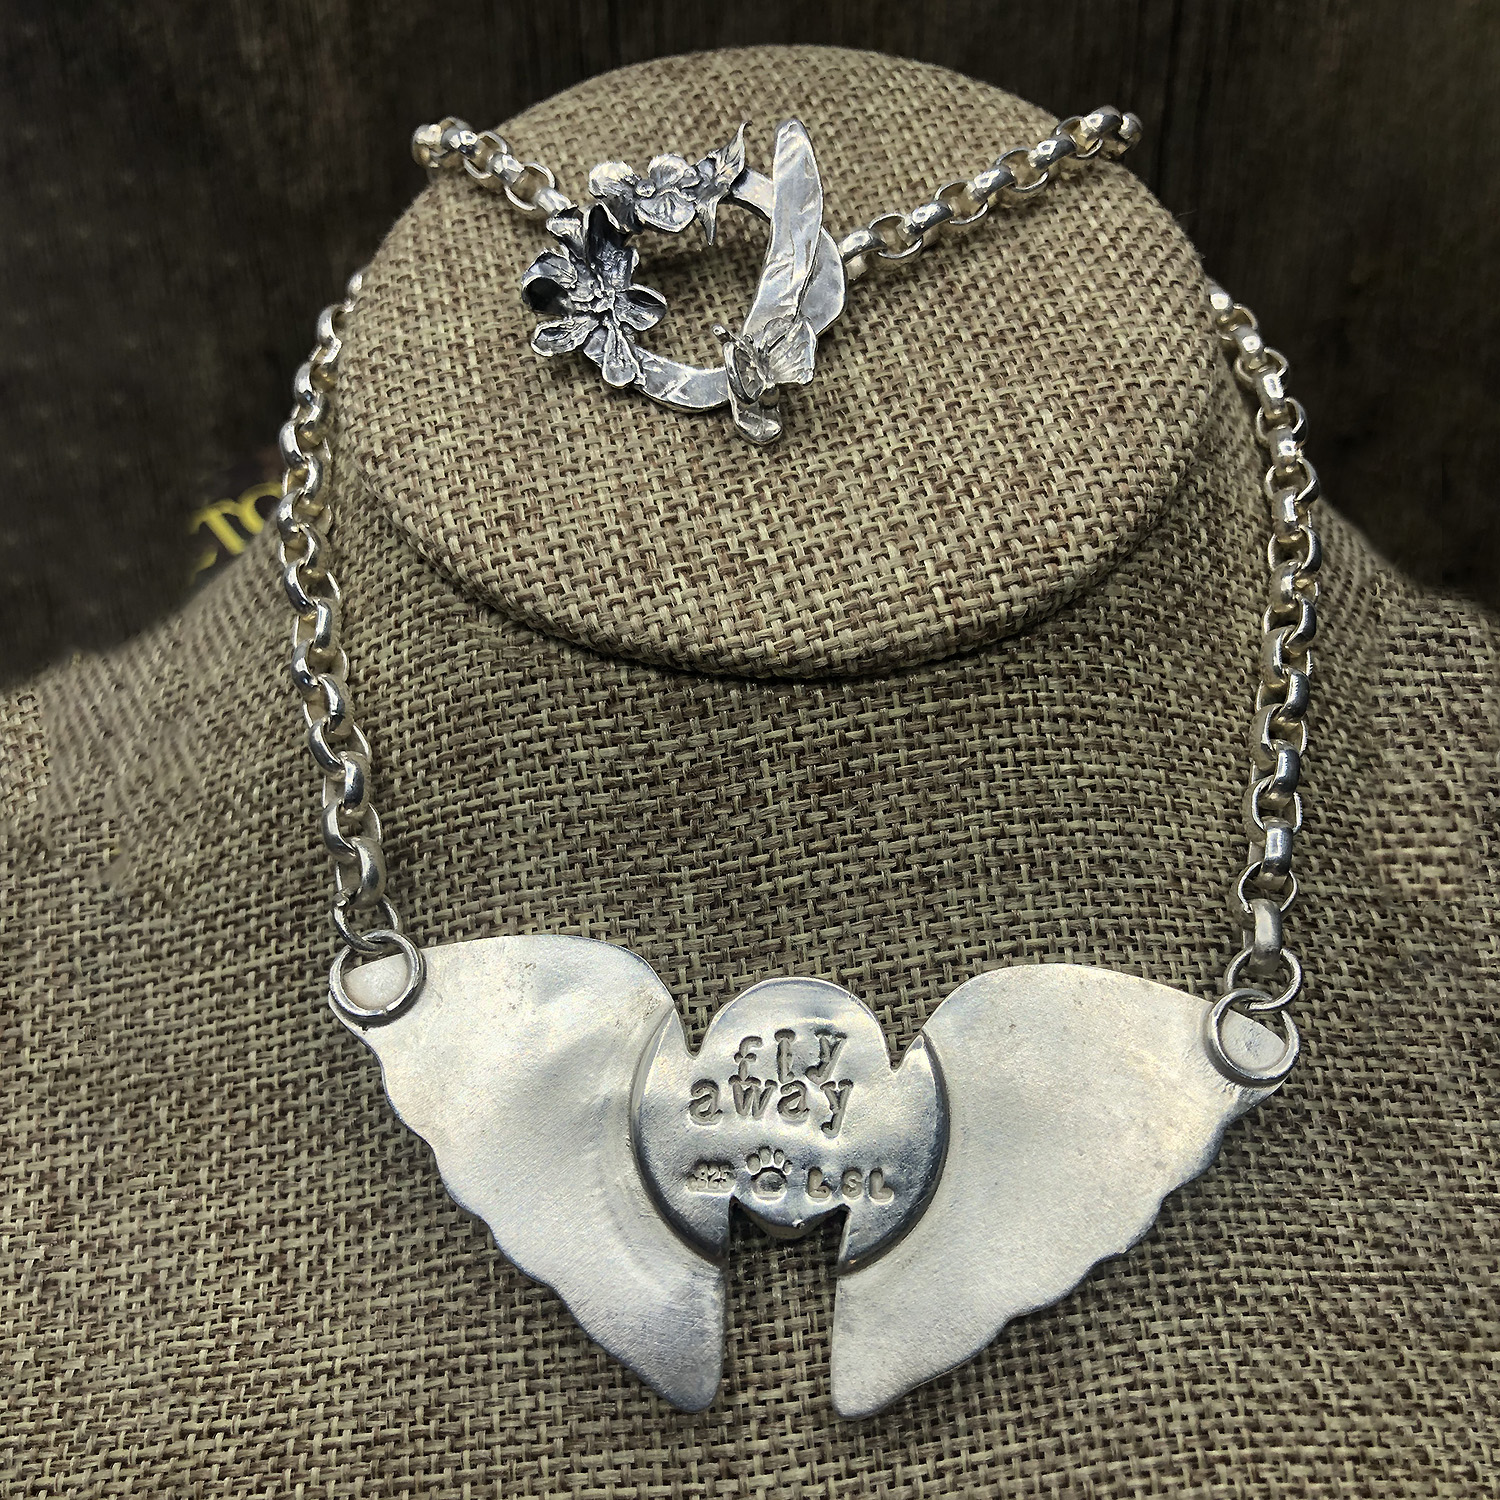 Stone Butterfly Pendant Necklace with engraving